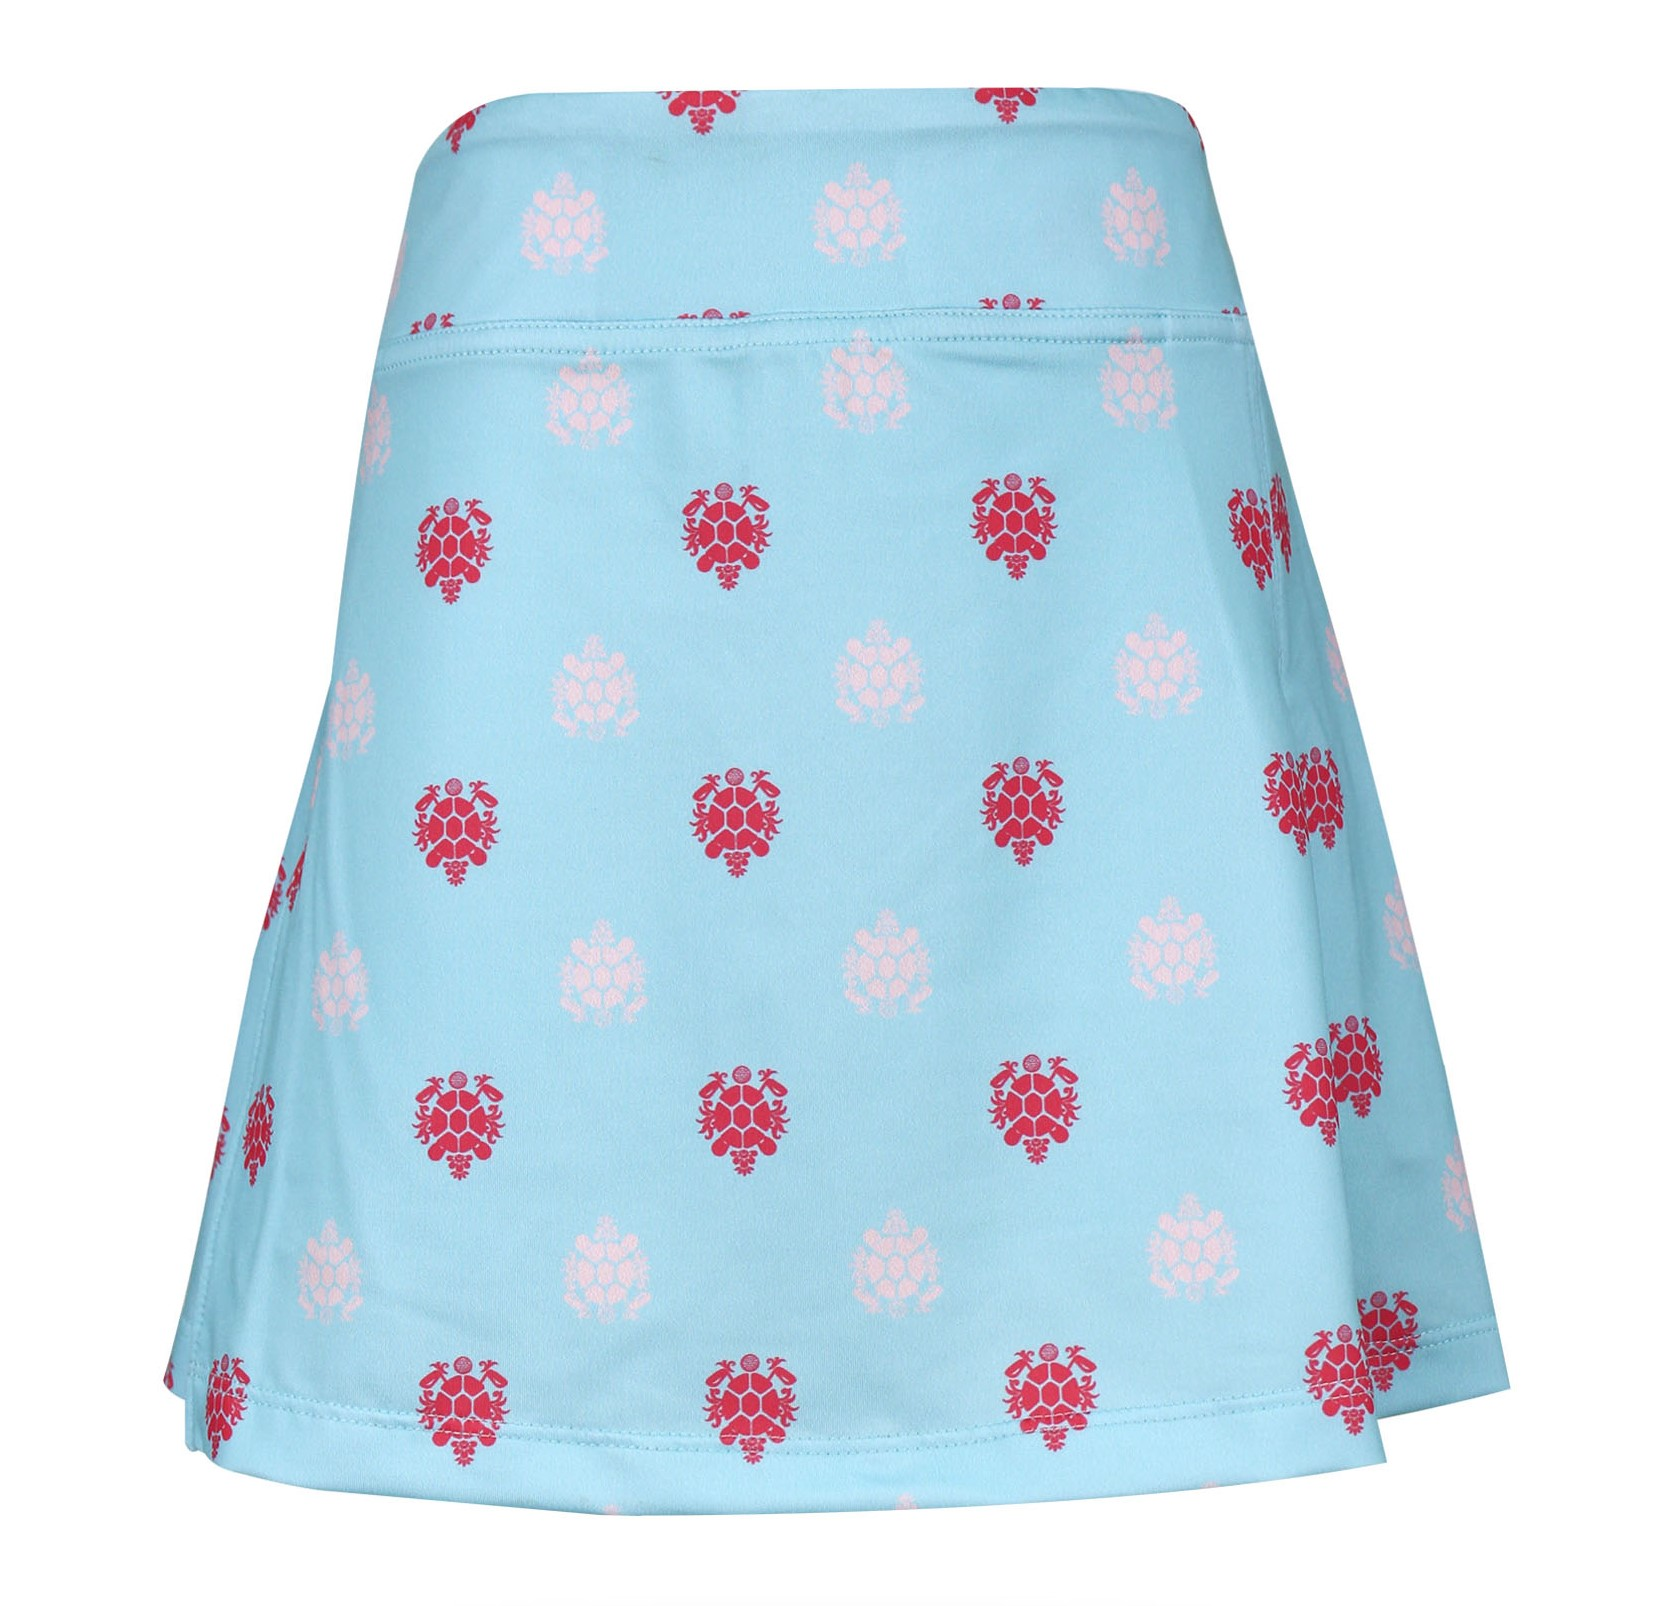 Jules Knit Peekaboo Pleated Girls's Golf & Tennis Skort in Shell De Lis  Print